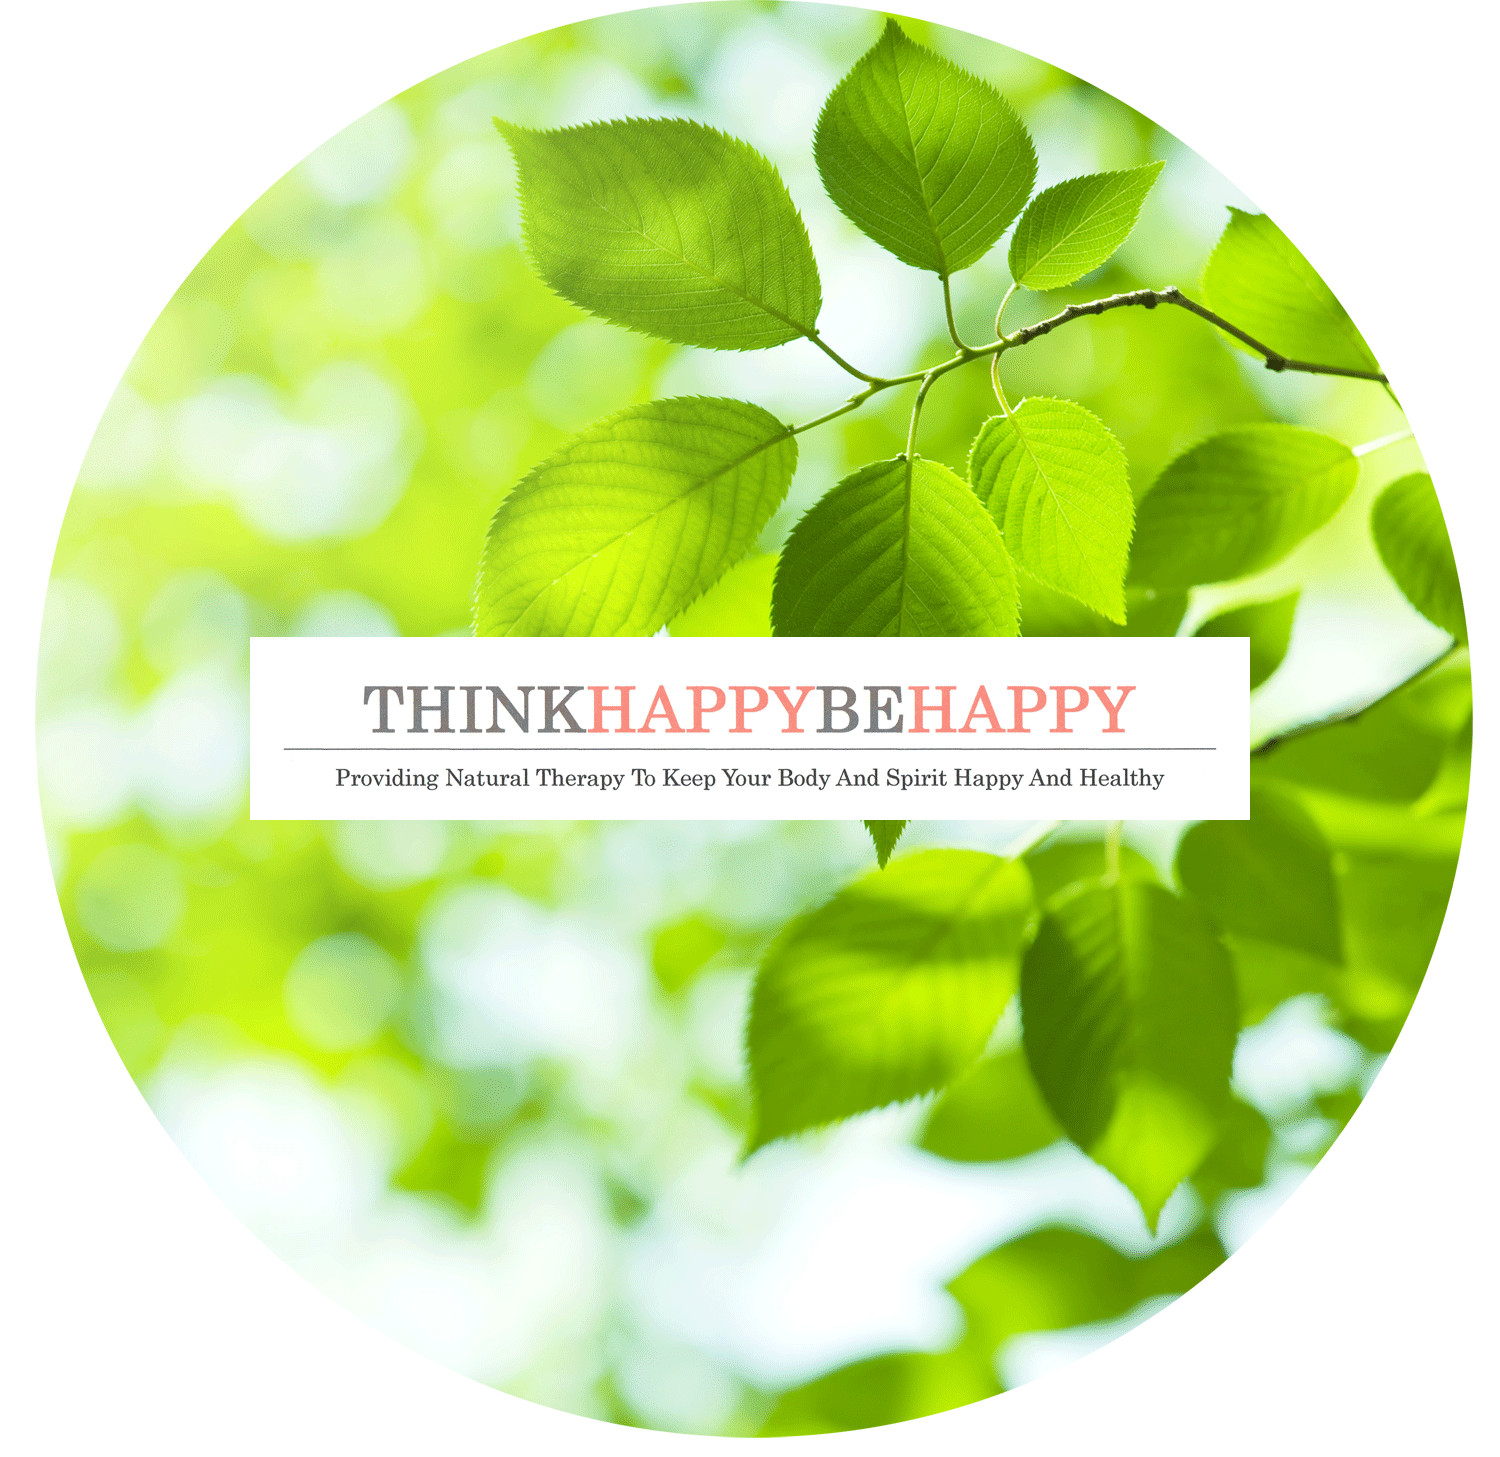 thinkhappybehappy_logo